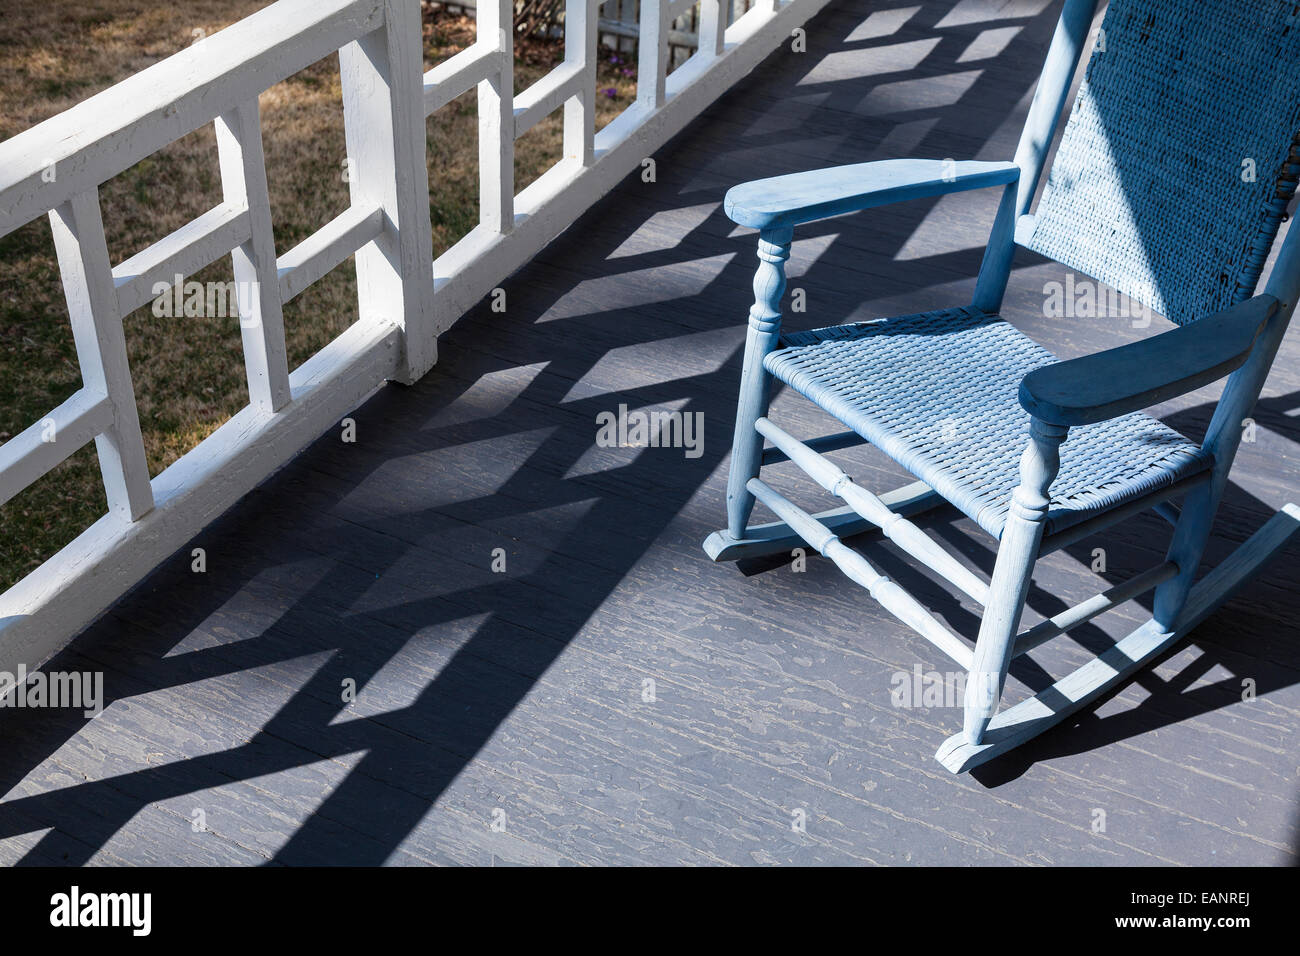 shadows of classic porch railing design make pattern on blue porch decking with rocking chair - Stock Image